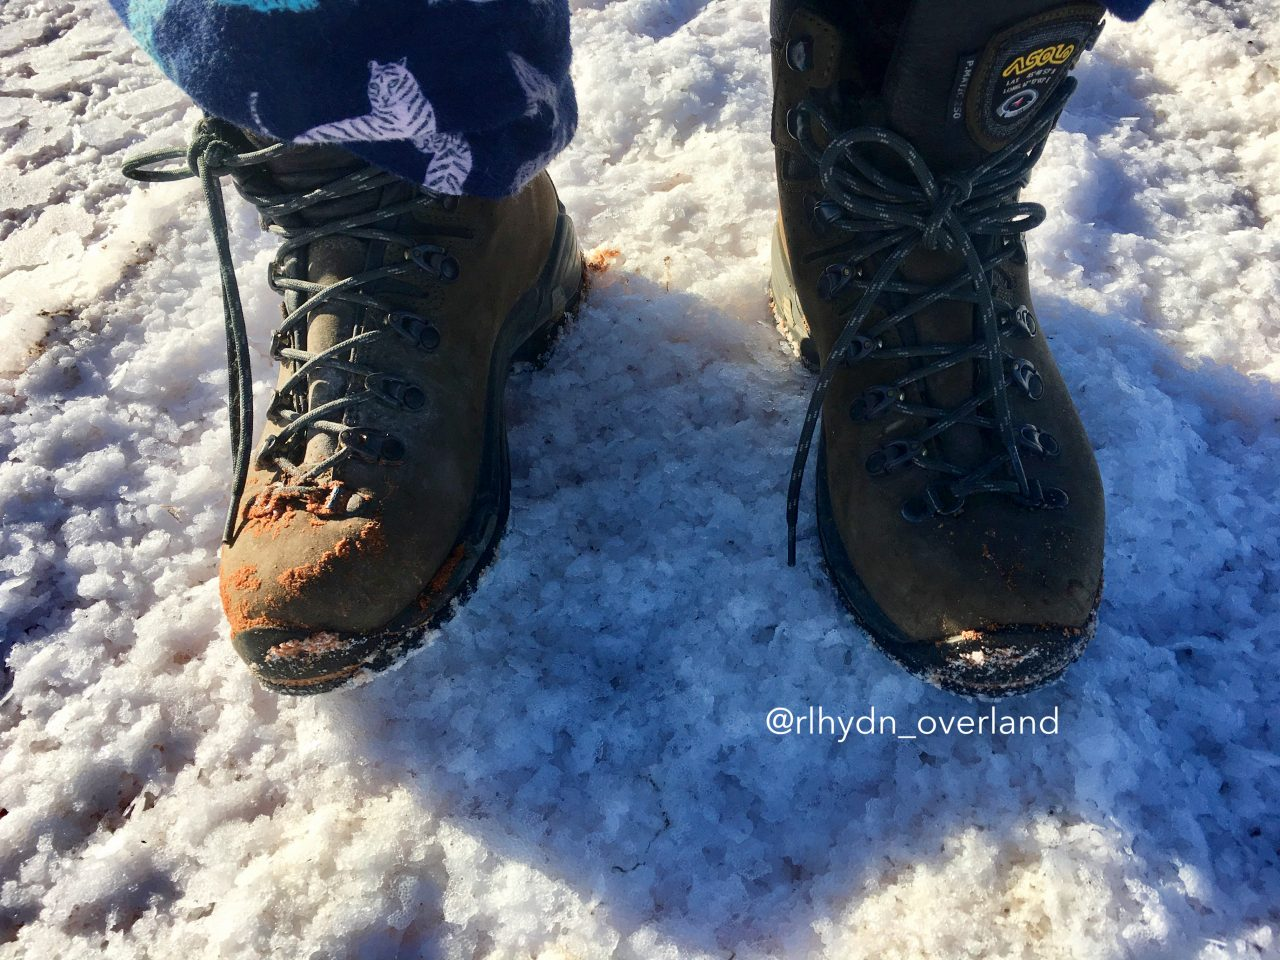 Lake Hart on my Boots